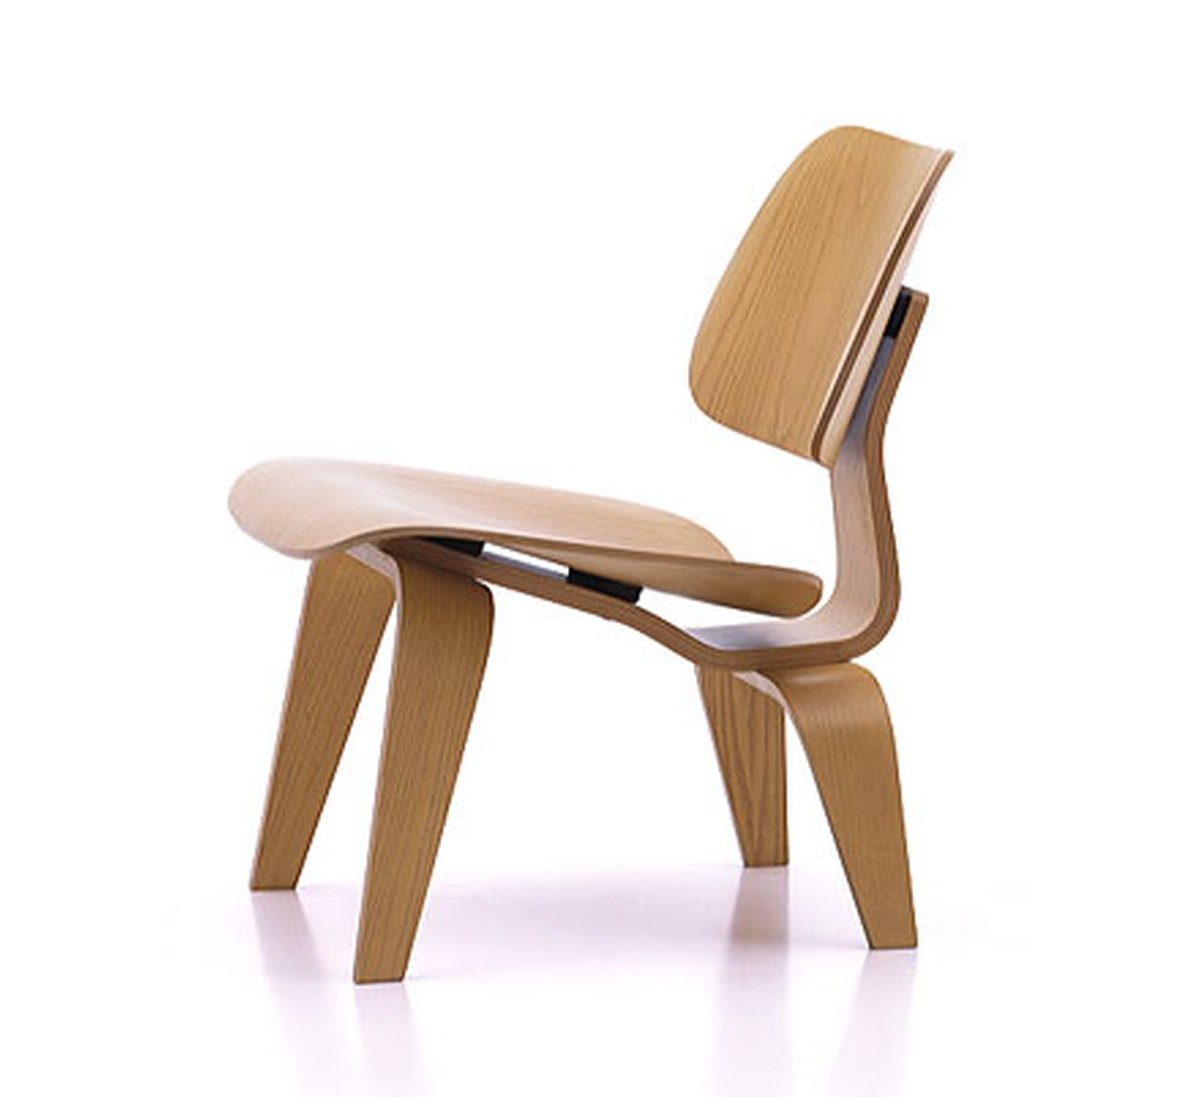 LCW CHAIR Designed by Charles & Ray Eames, 1946 610 x 560 x 705 mm Plywood Price: 2.770.000 VND